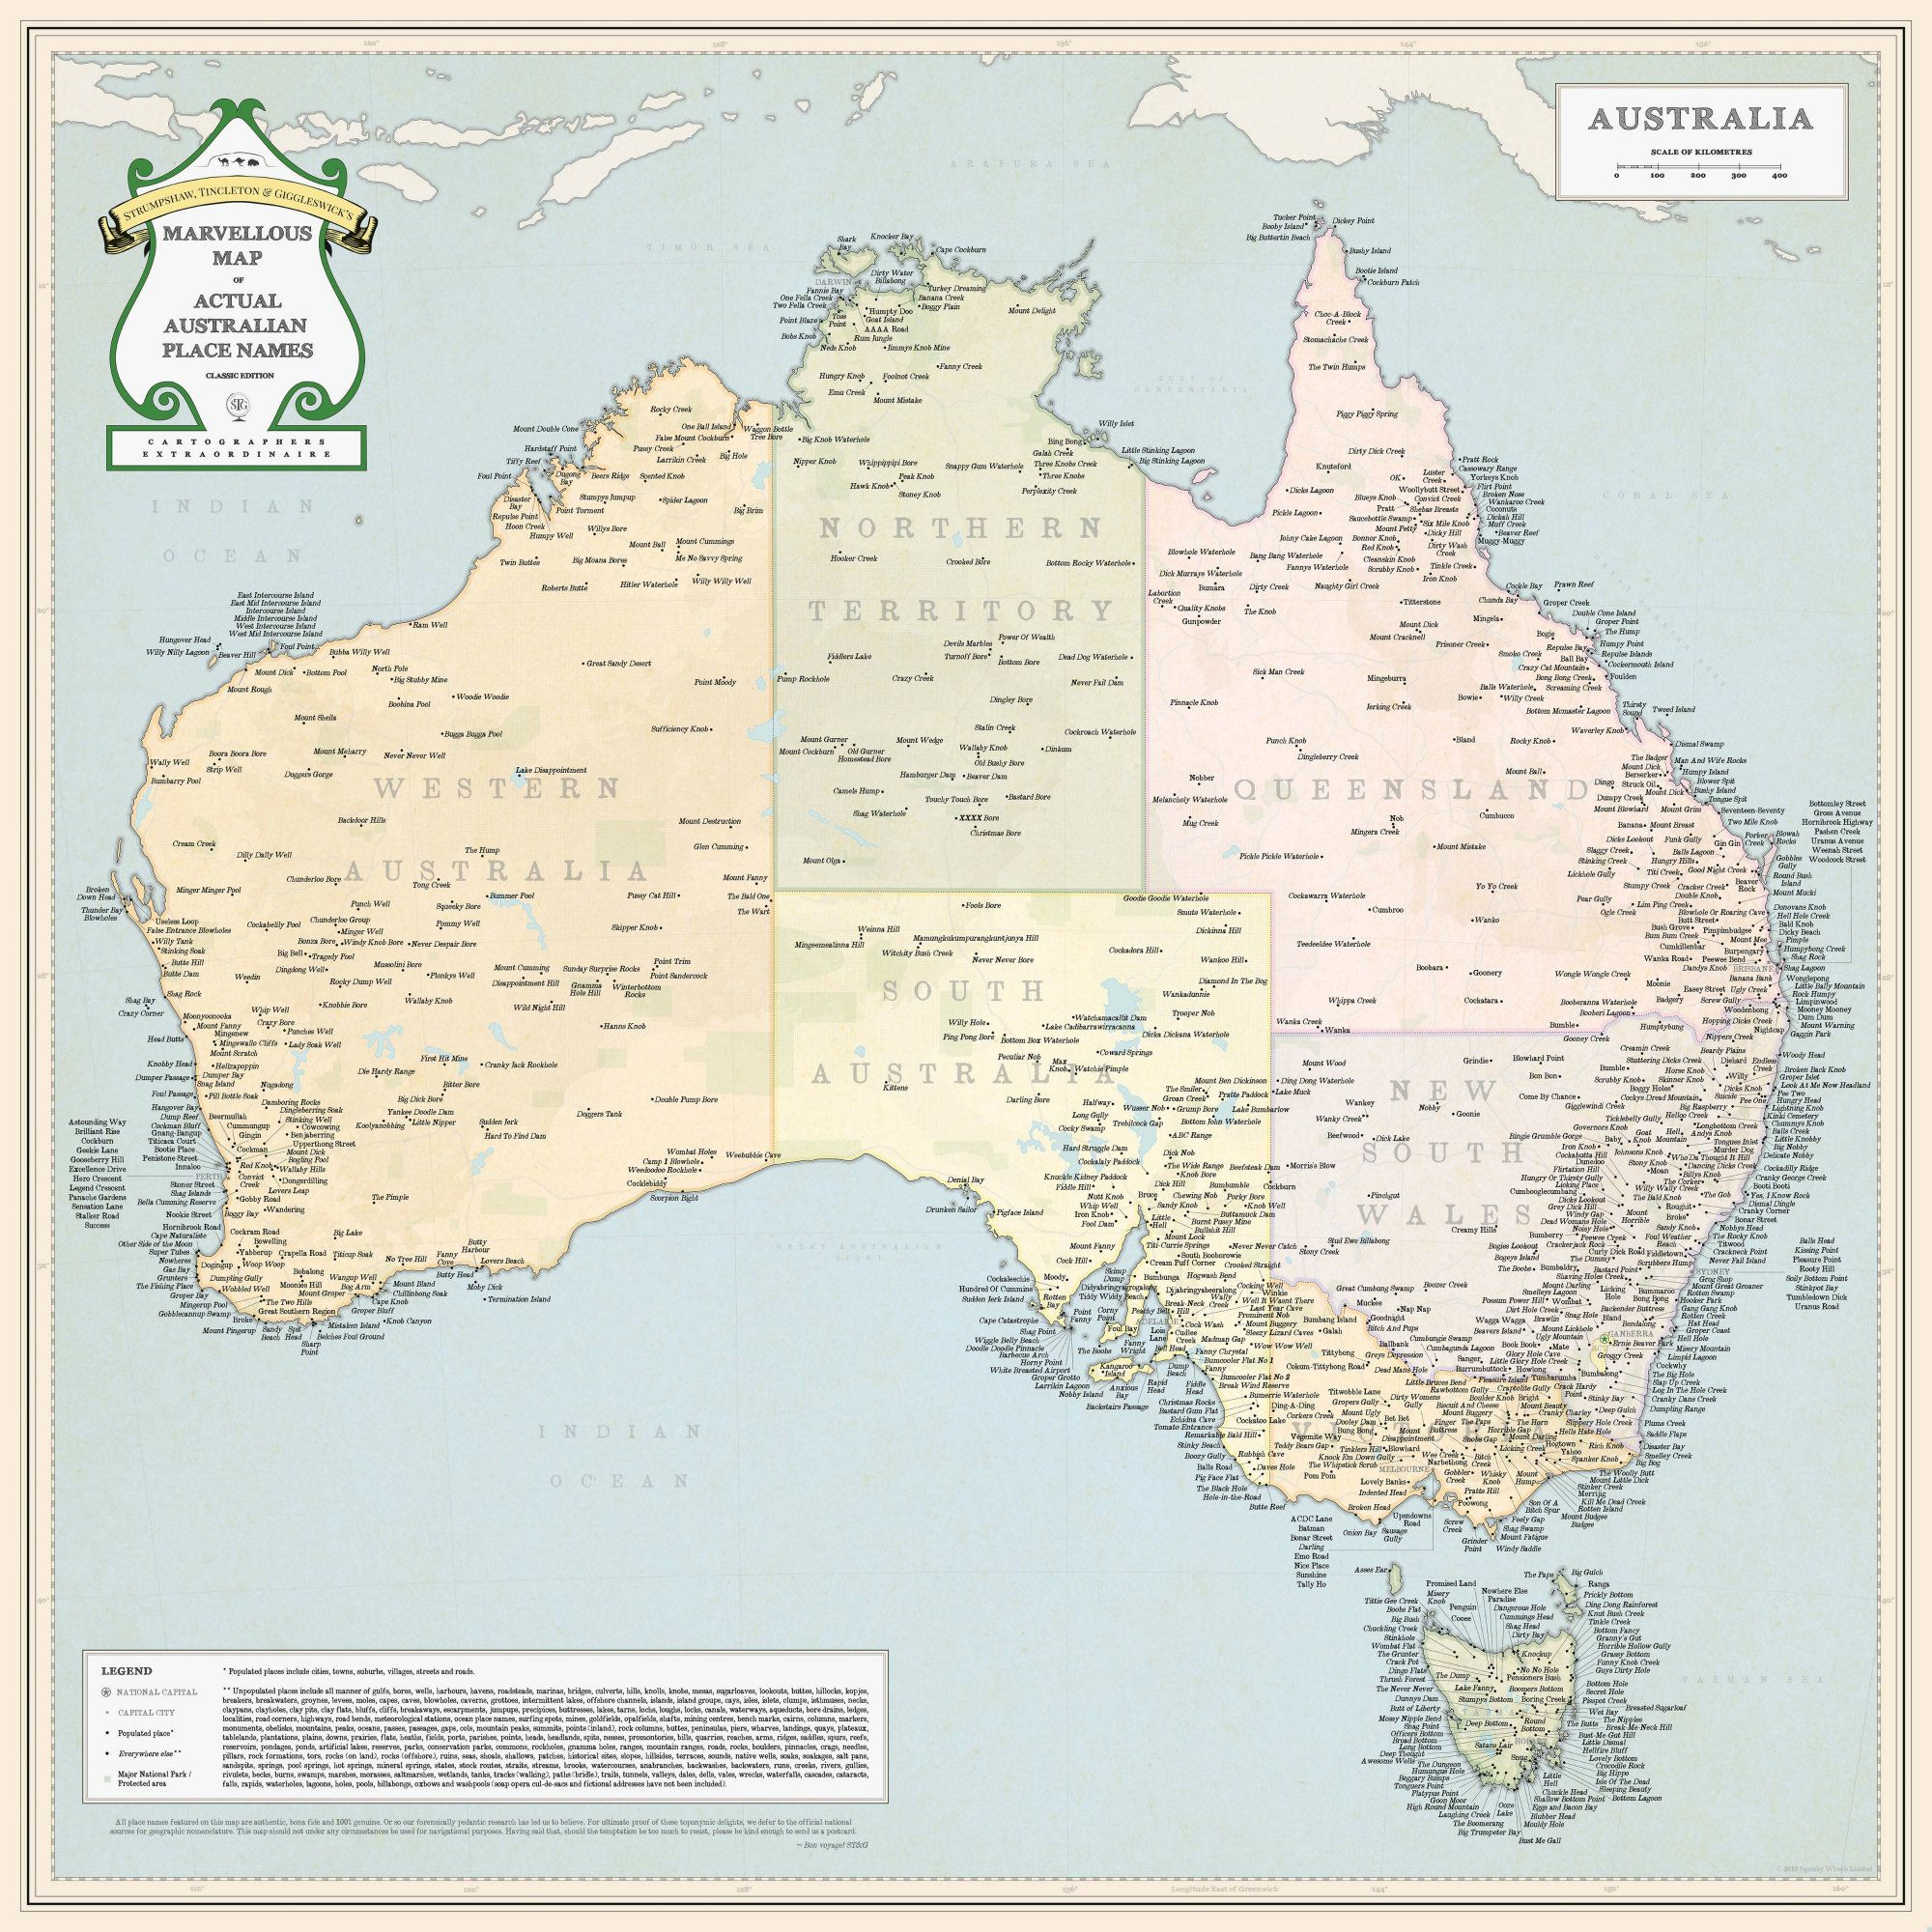 Show Me A Map Of Australia.Funny And Unusual Place Names Of Australia Maps Geography